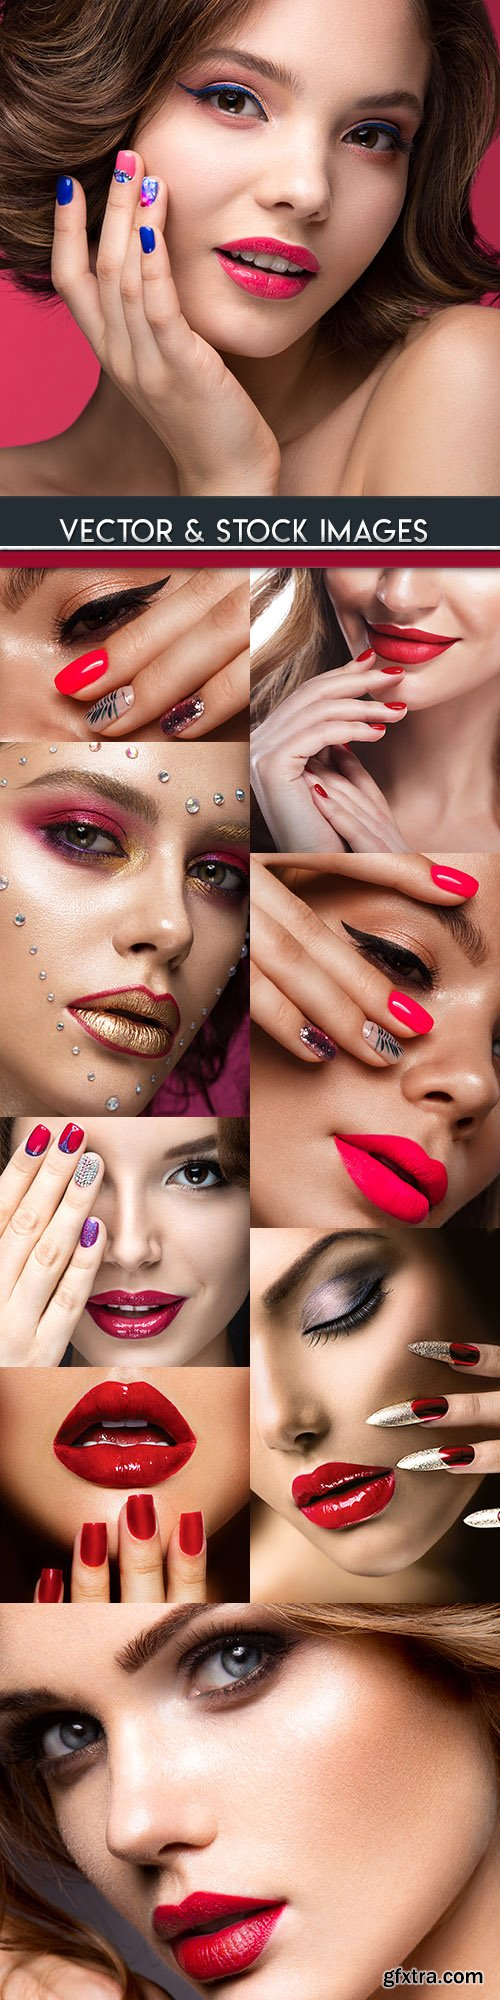 Beautiful girl with make-up hairstyle and manicure